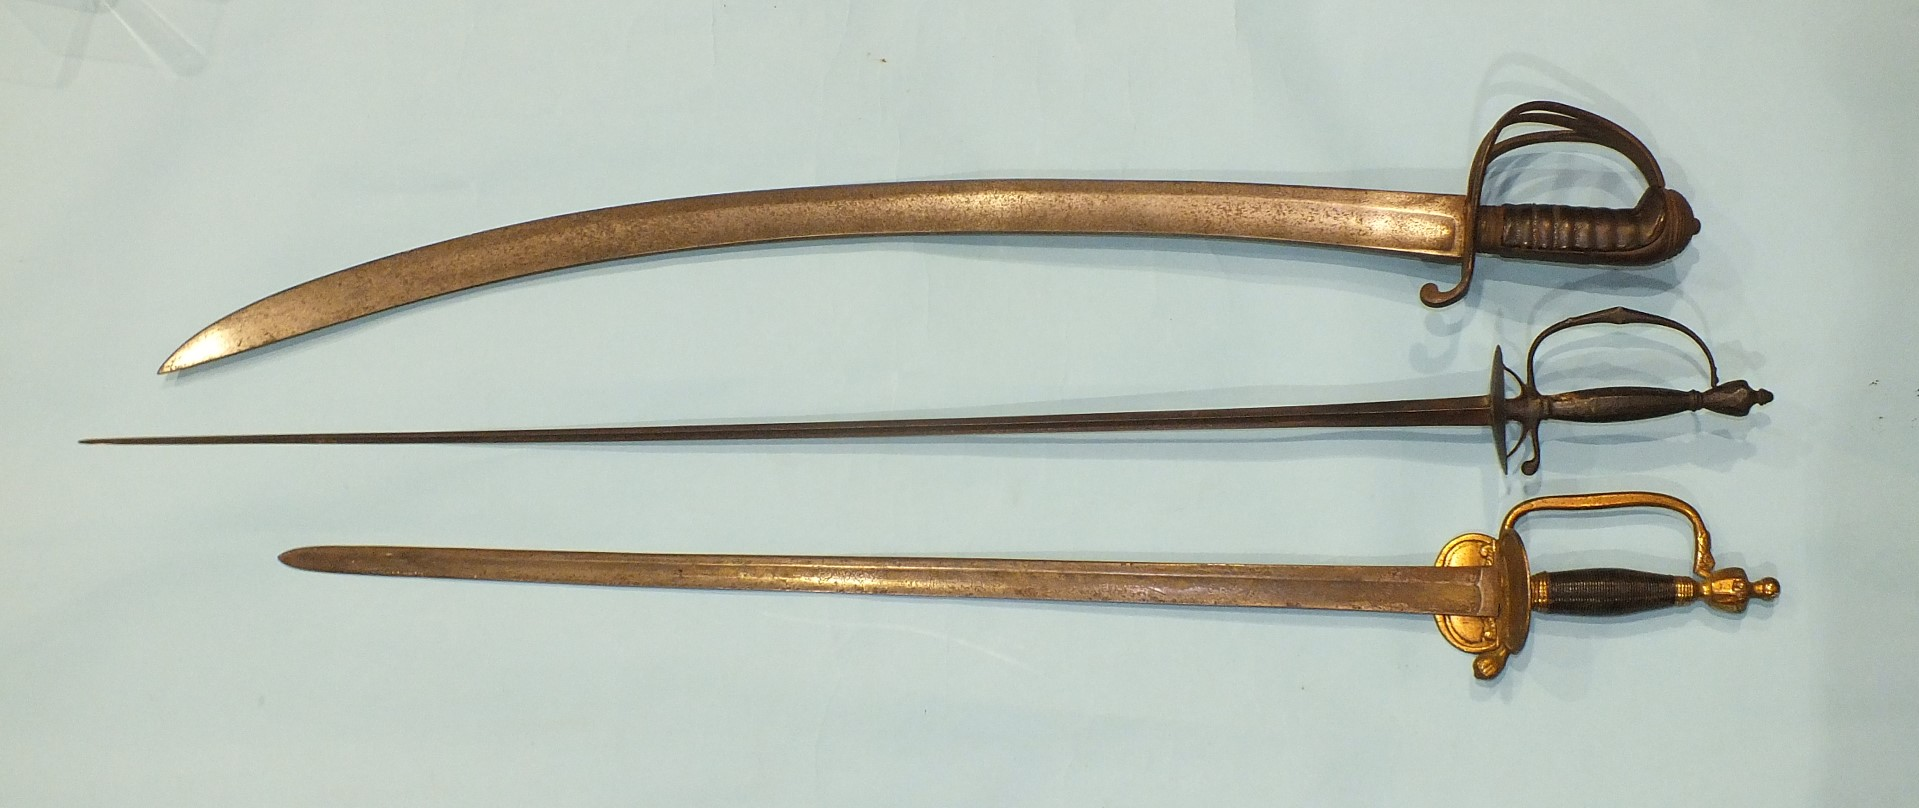 Lot 221 - An 18th steel small sword with 86cm triangular blade, plain sheet grip and guard, 101cm overall, a